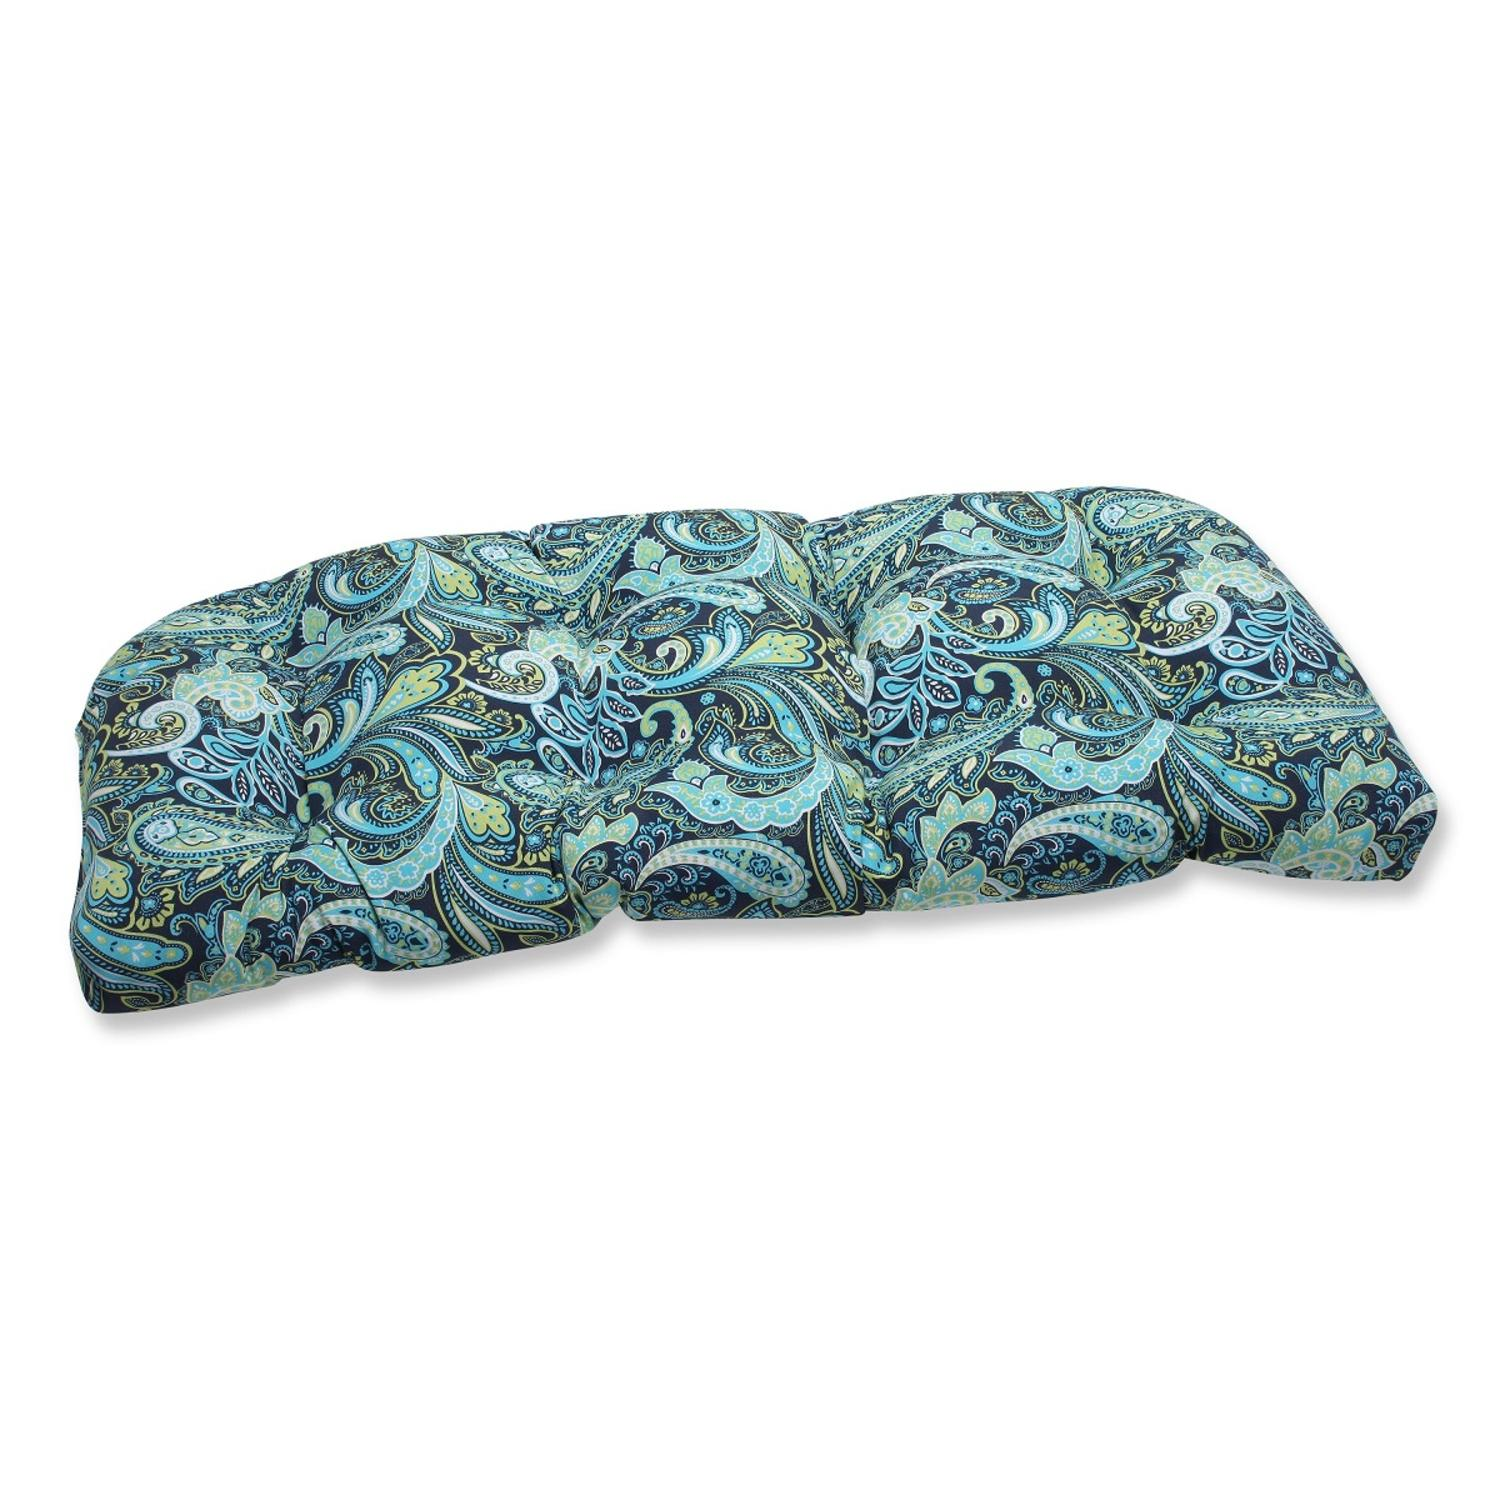 "44"" Sogno Paisley Blue, Green and White Outdoor Patio Tufted Wicker Loveseat Cushion"